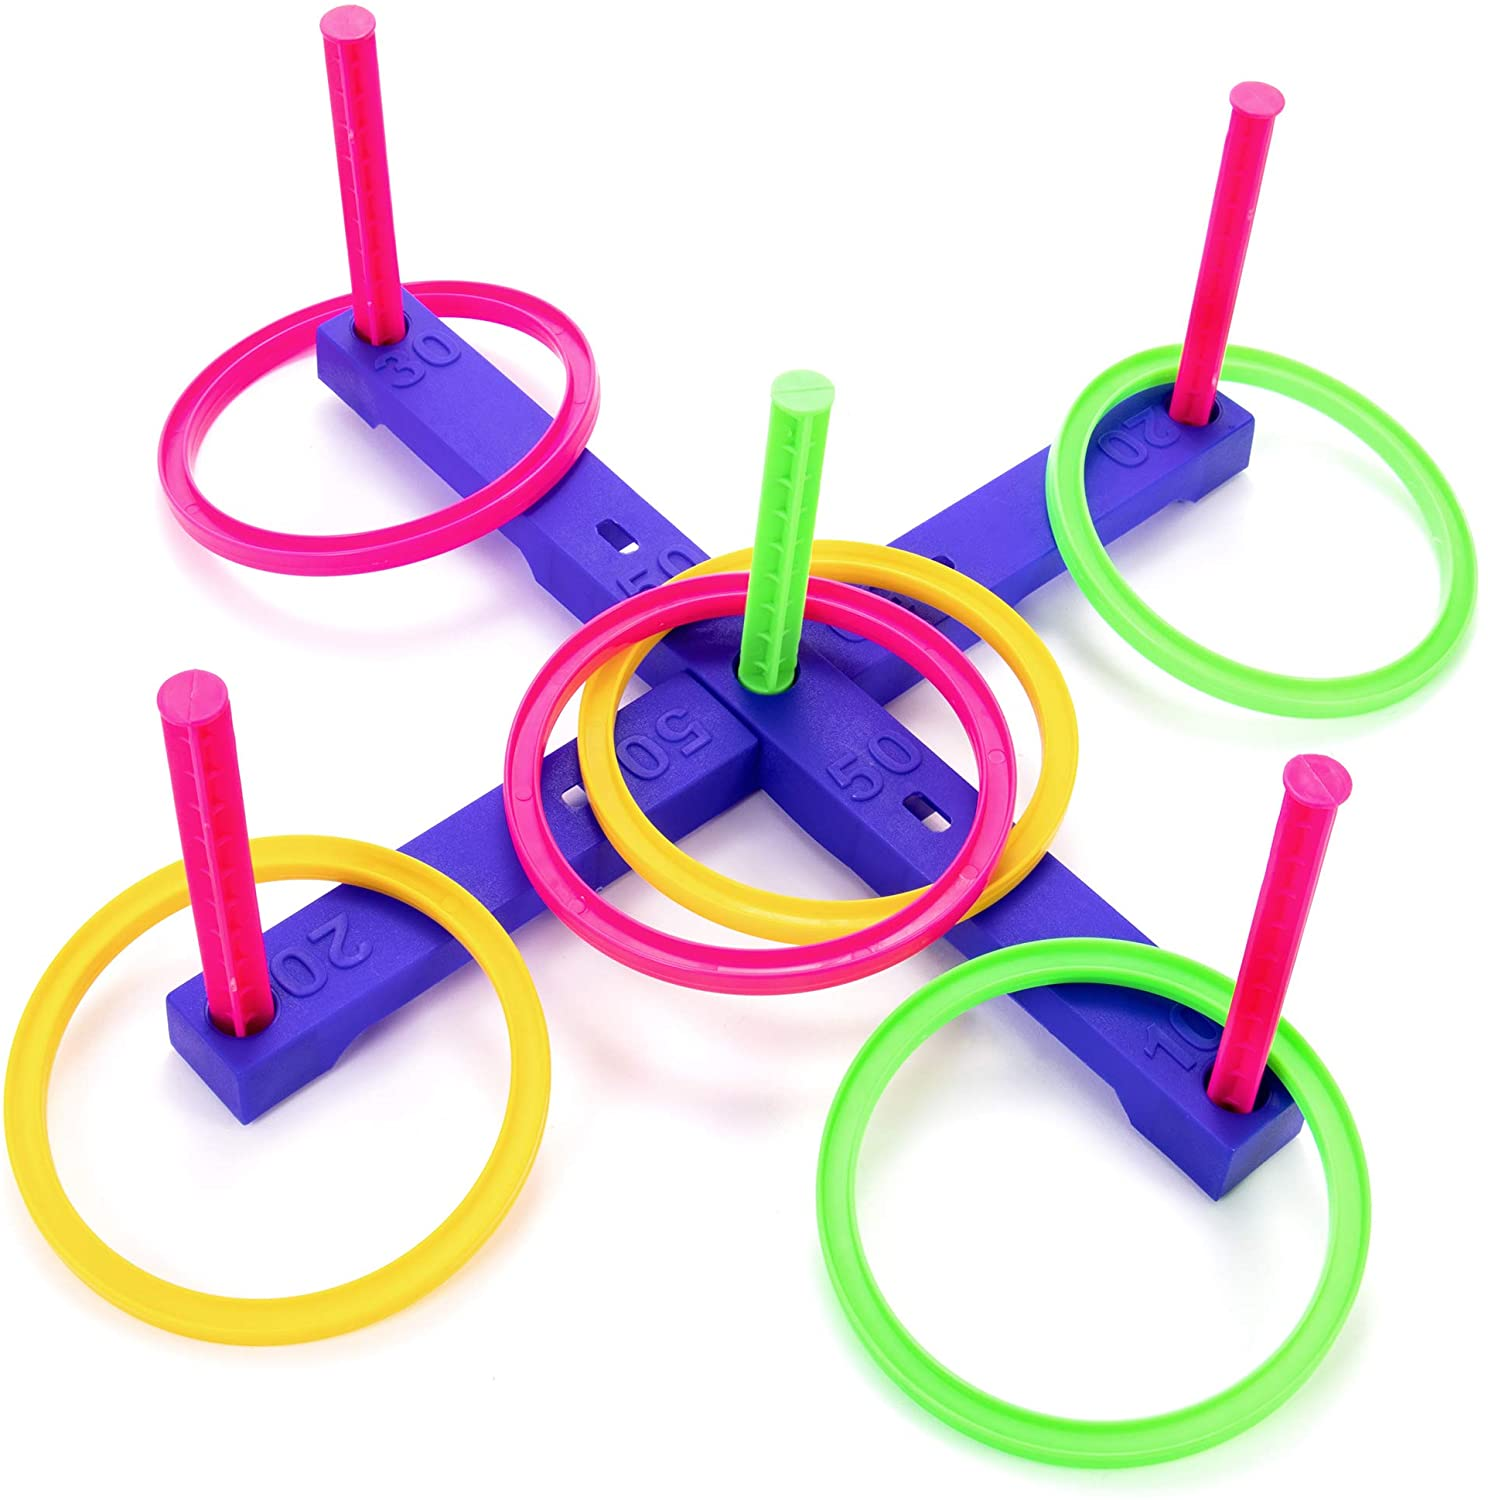 MIDWAY MONSTERS Neon Ring Toss - Play & Go Portable Toss Game Peg Board - Classic Indoor and Outdoor Activities - Carnivals, Barbecues, Parties, and Family Fun